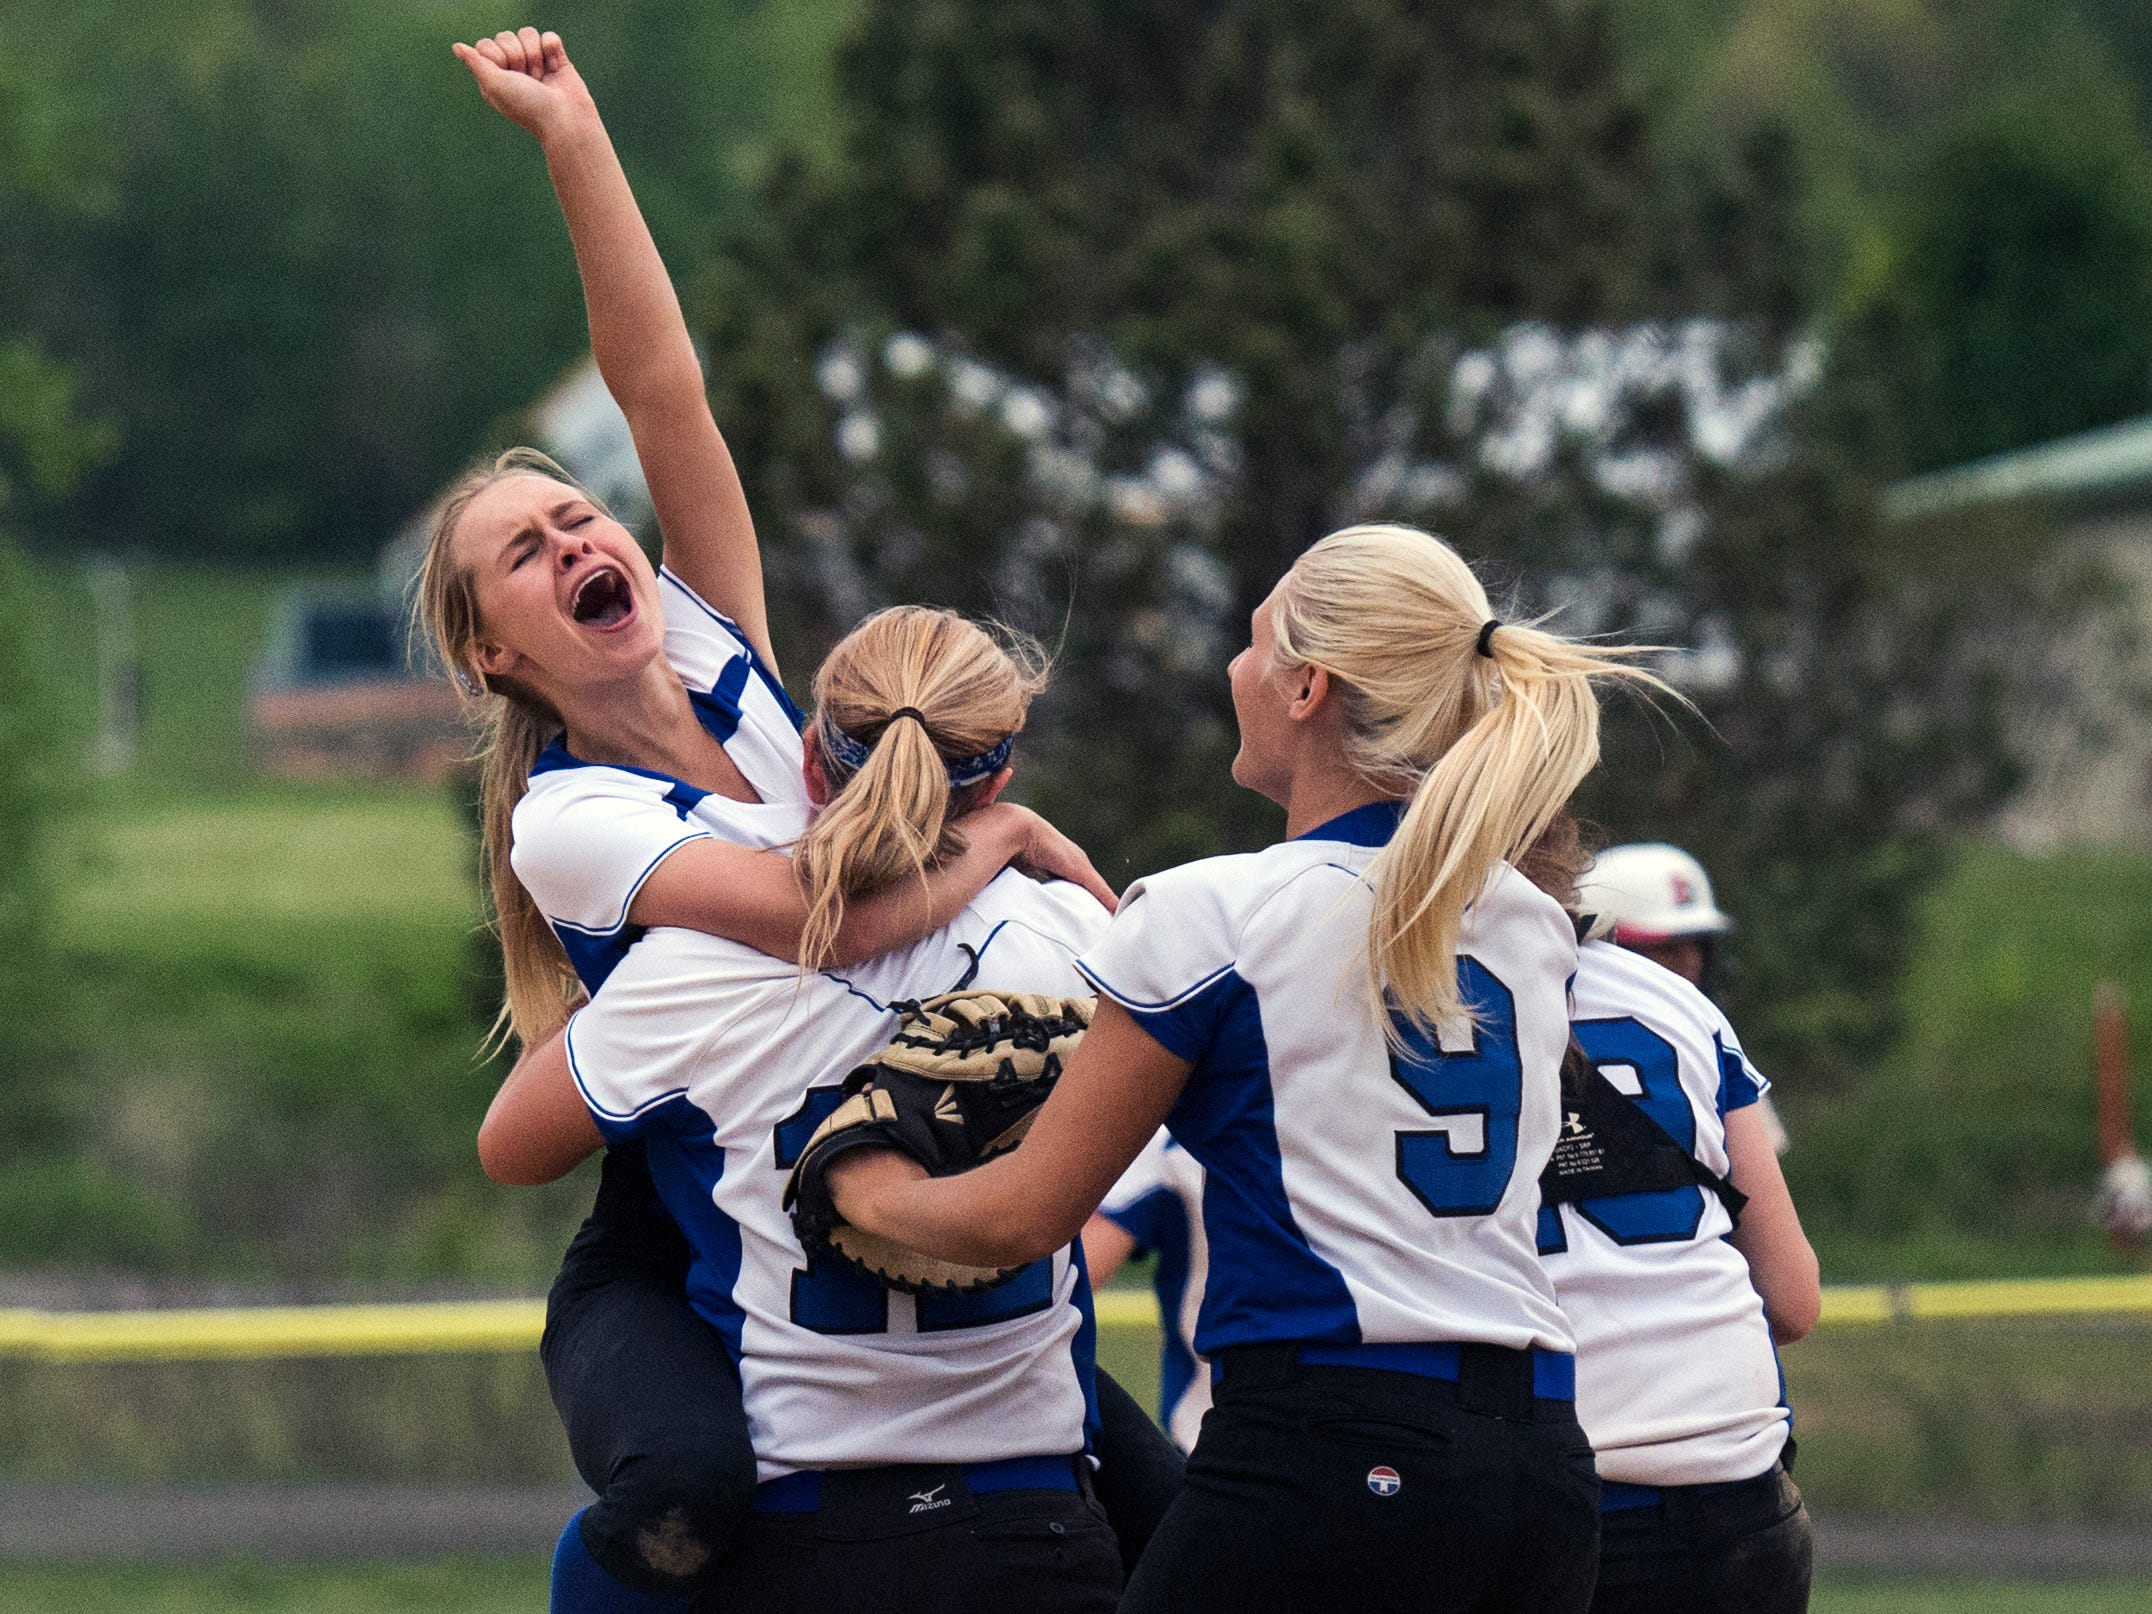 Horseheads player Kayla Tyler celebrates the final out after the Blue Raiders defeated Binghamton 5-2 on Friday evening to win the Southern Tier Athletic Conference title at the BAGSAI Complex in Binghamton.